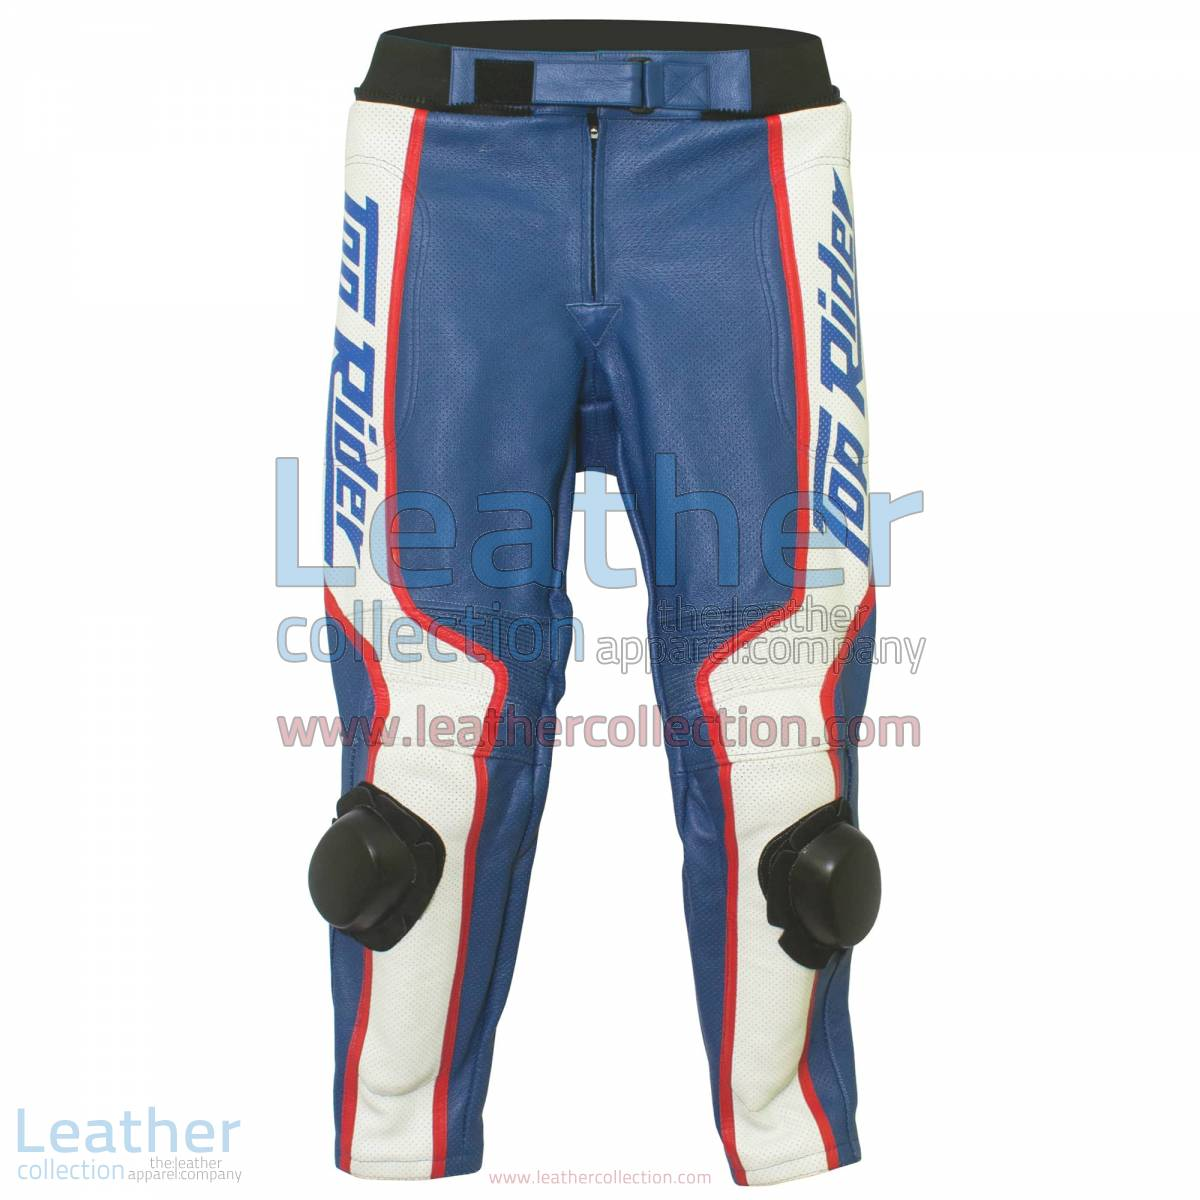 Freddie Spencer Honda Daytona 1985 Motorcycle Racing Pant | racing pants